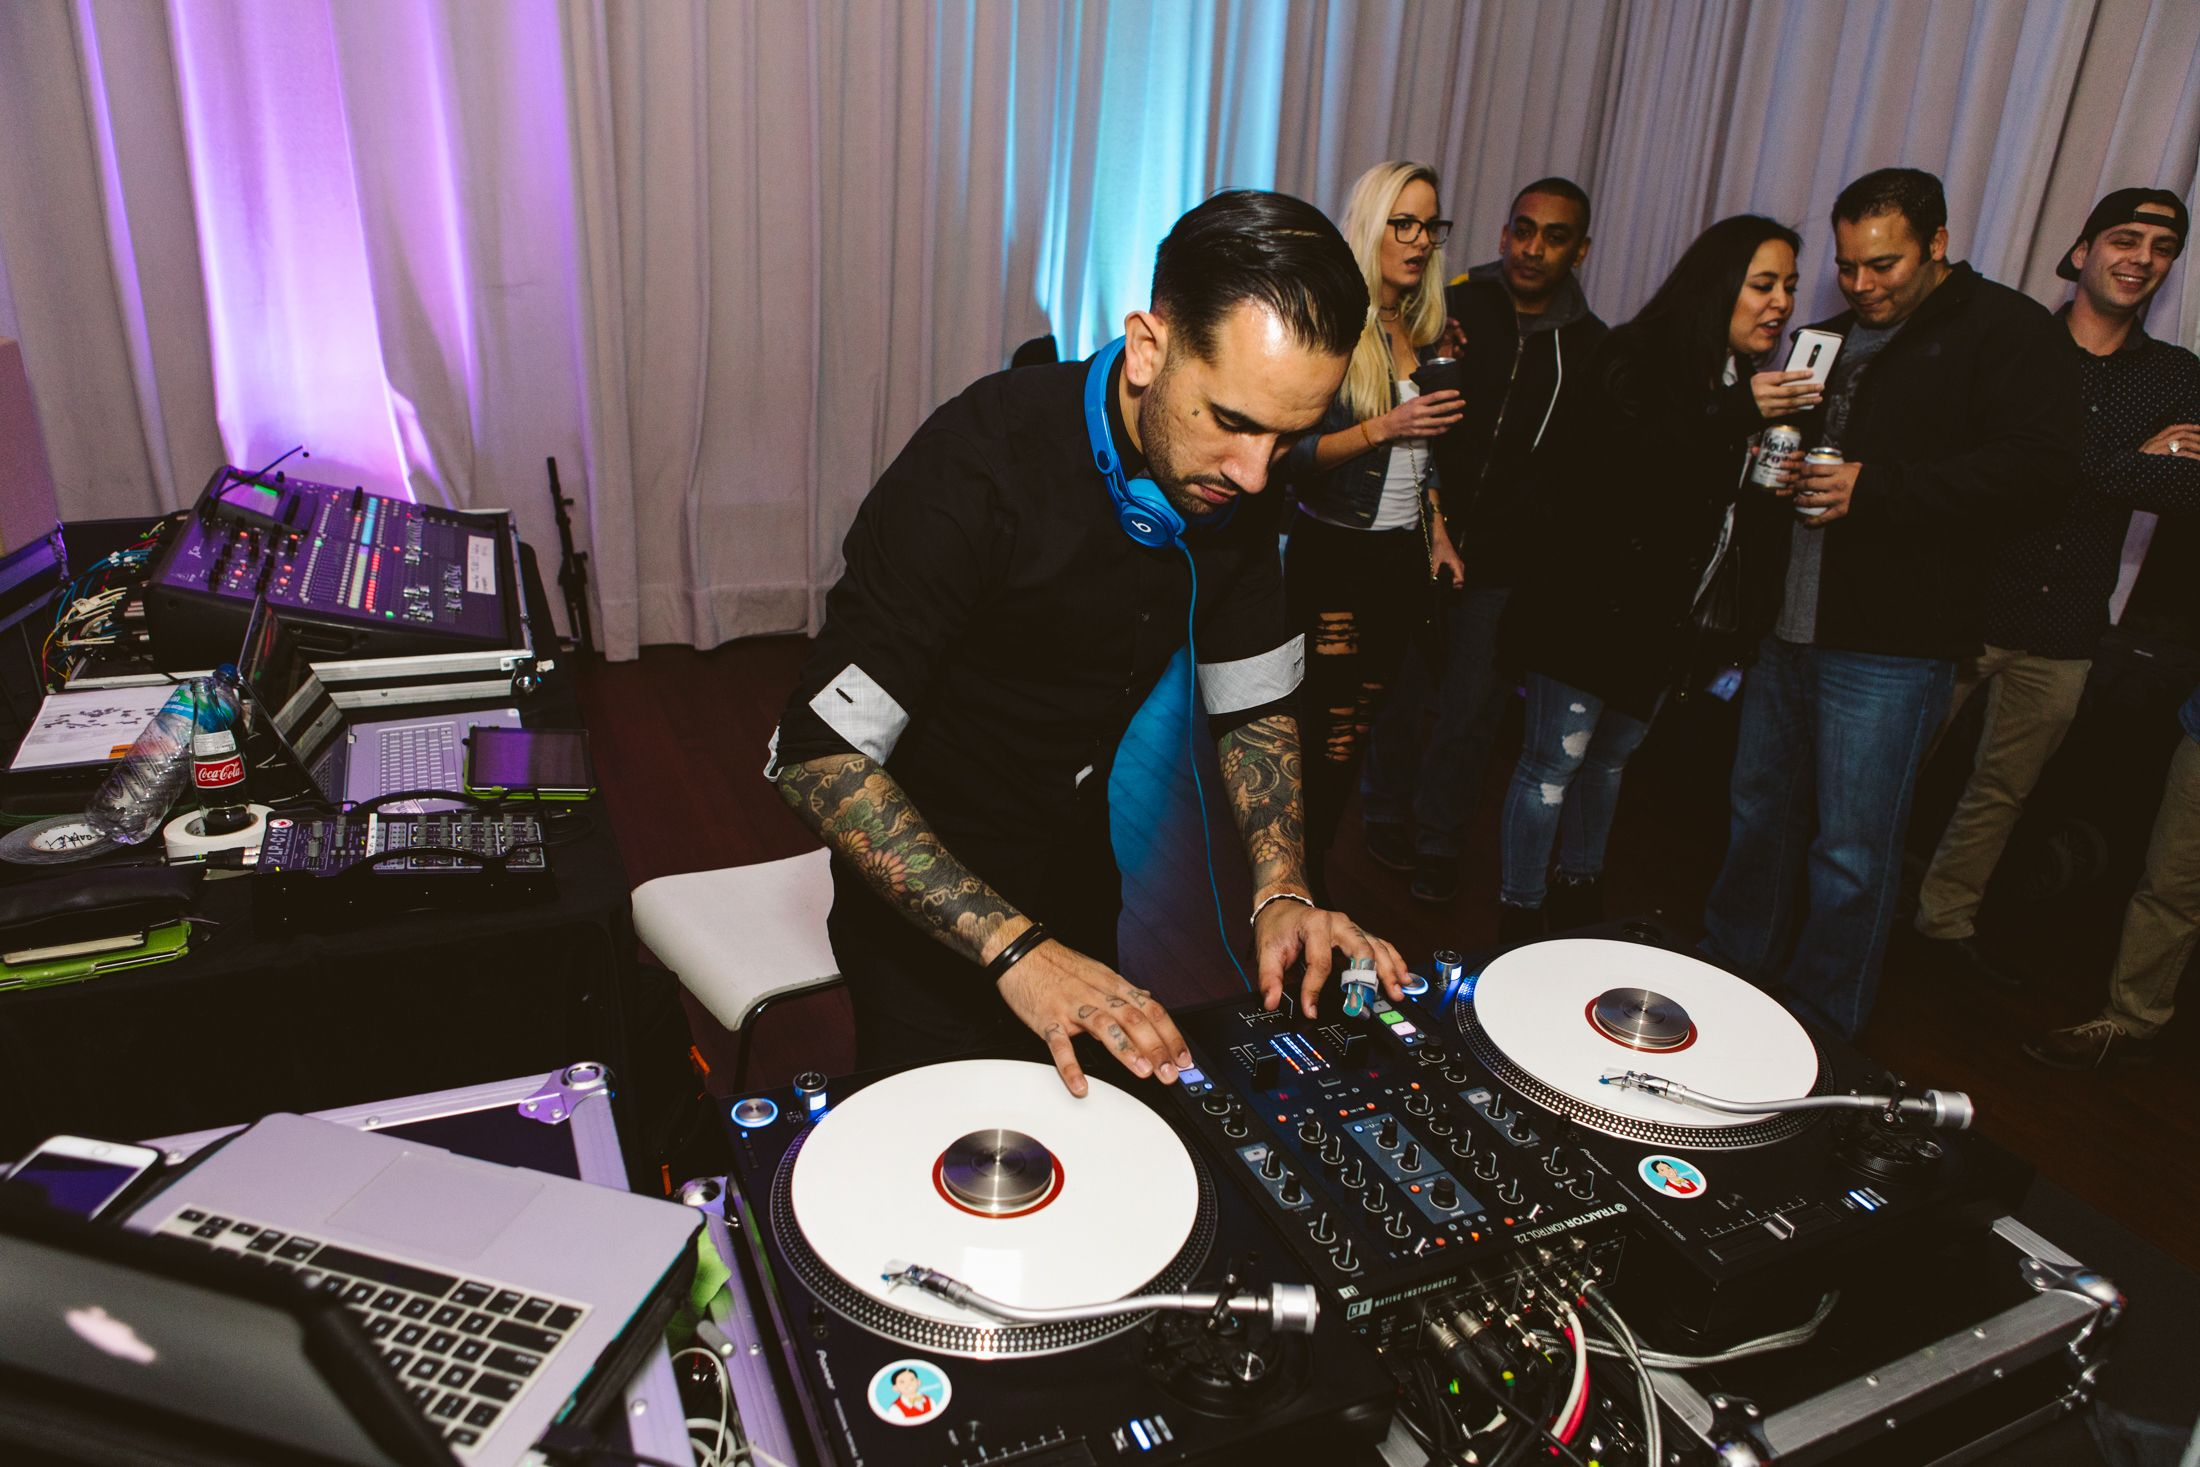 DJ Ulovei at First Thursday at The South Congress Hotel ...